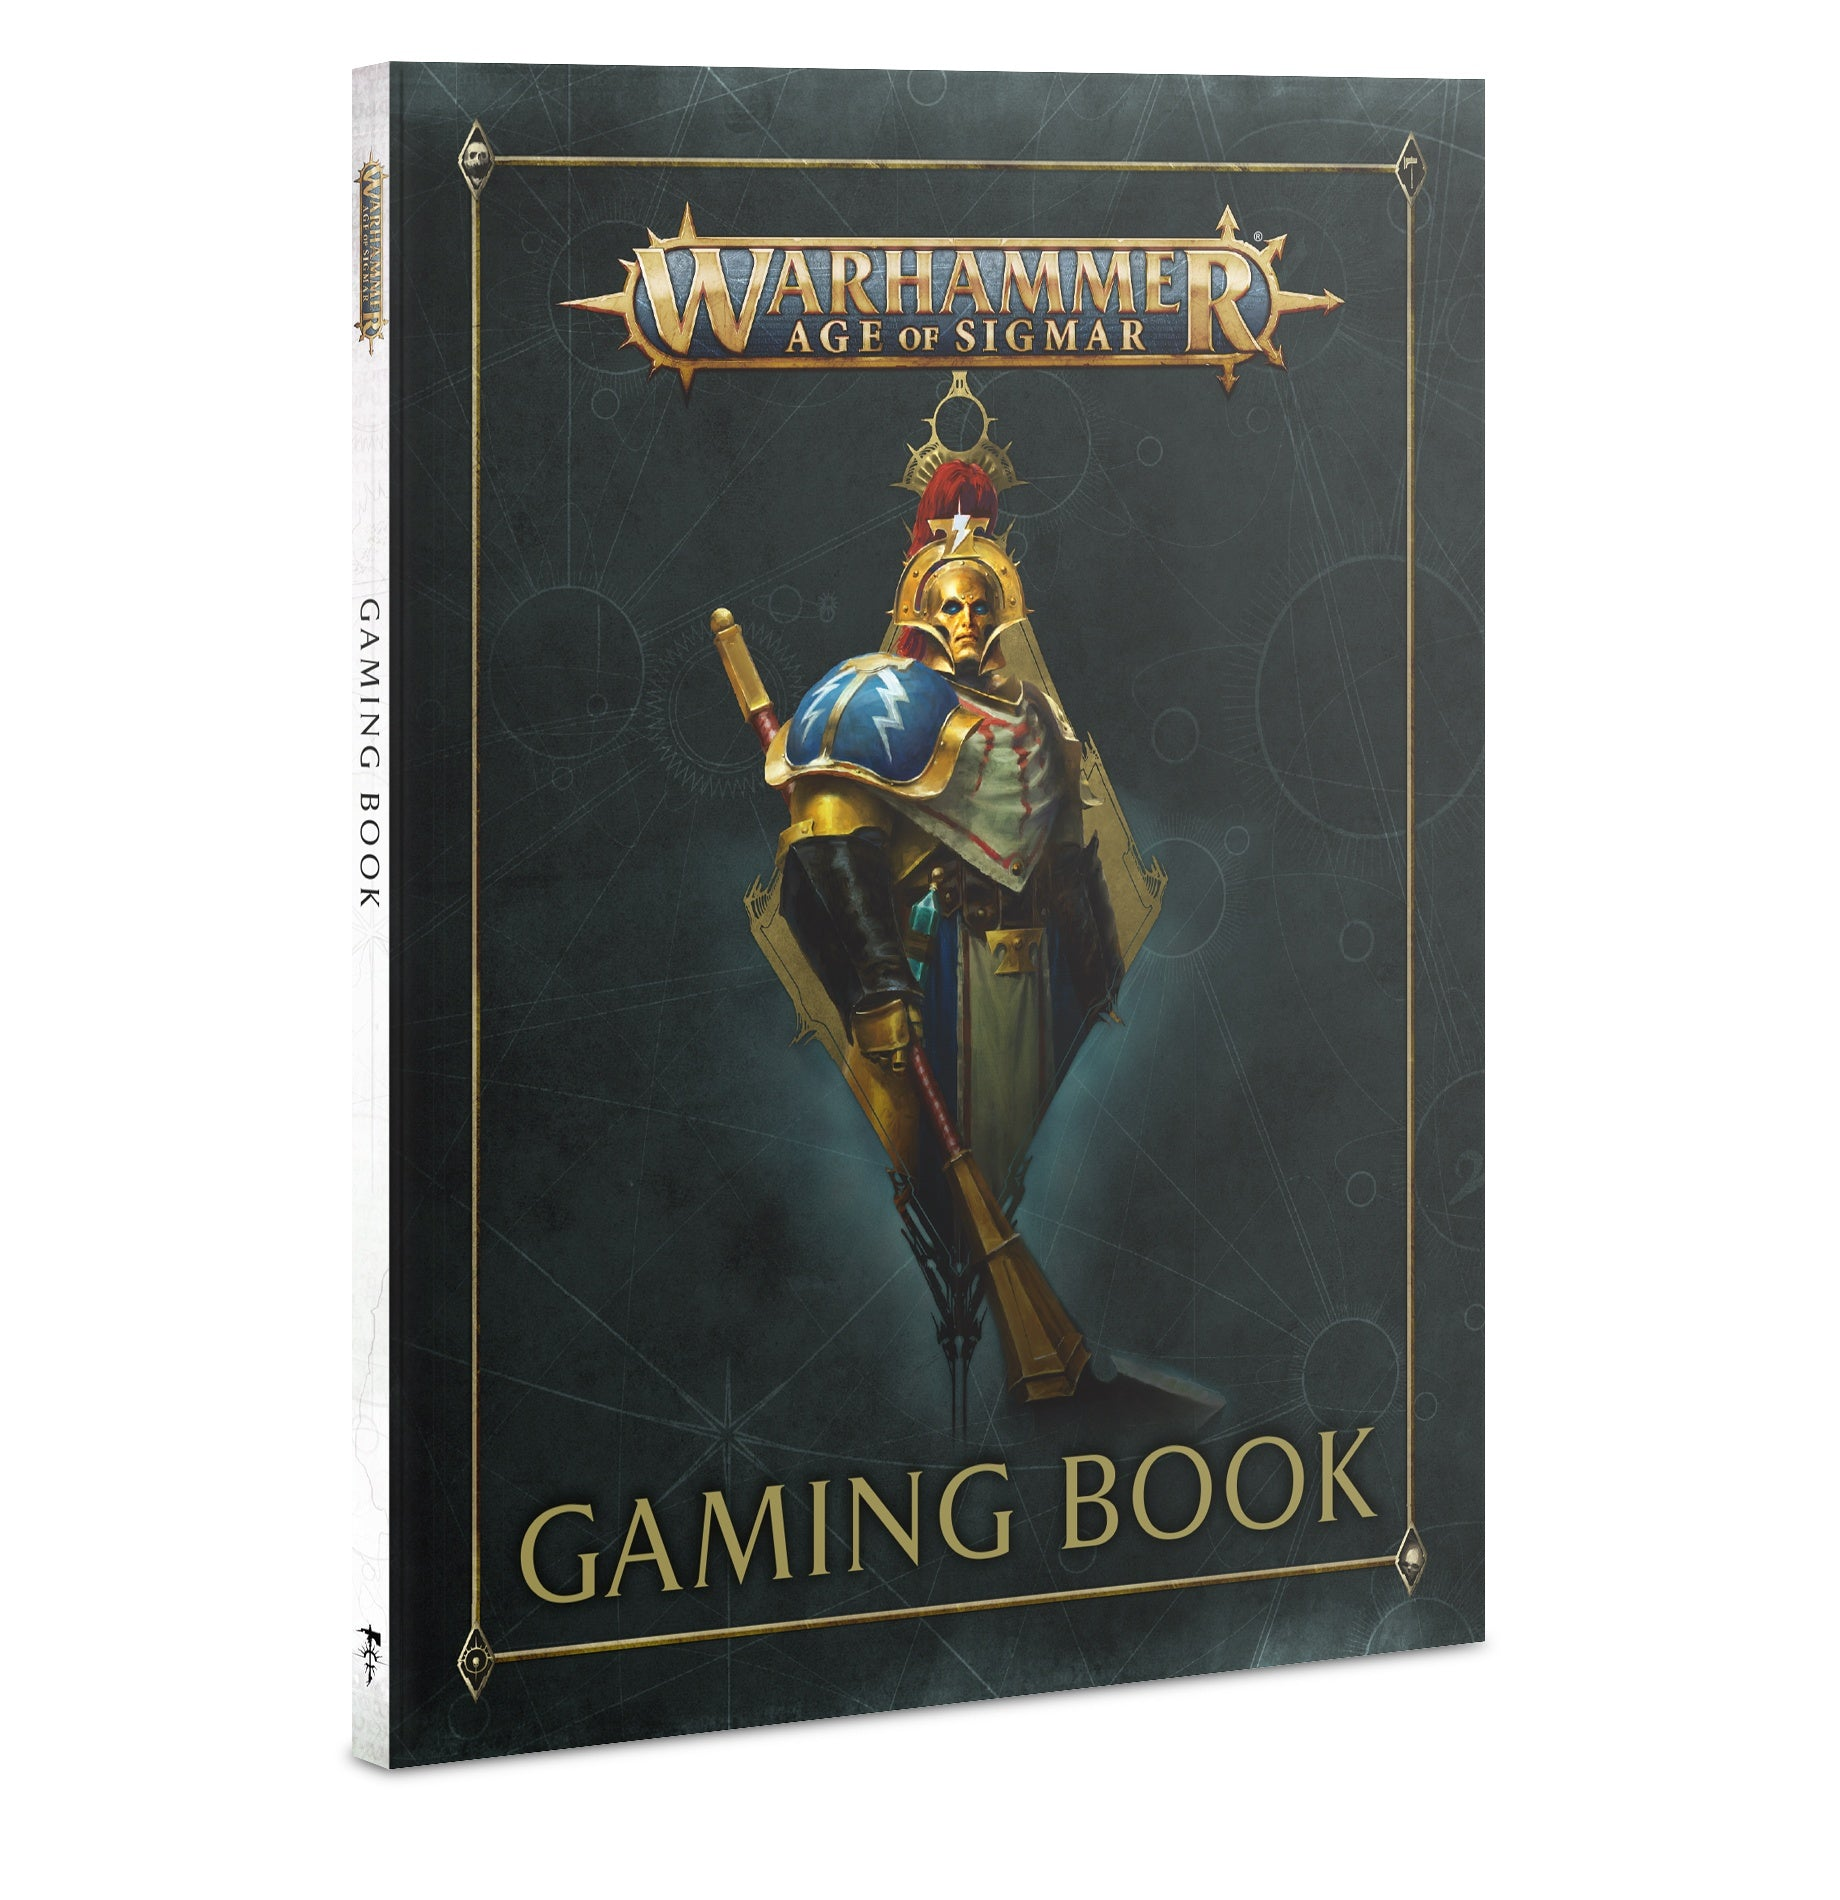 Warhammer Age of Sigmar: Gaming Book